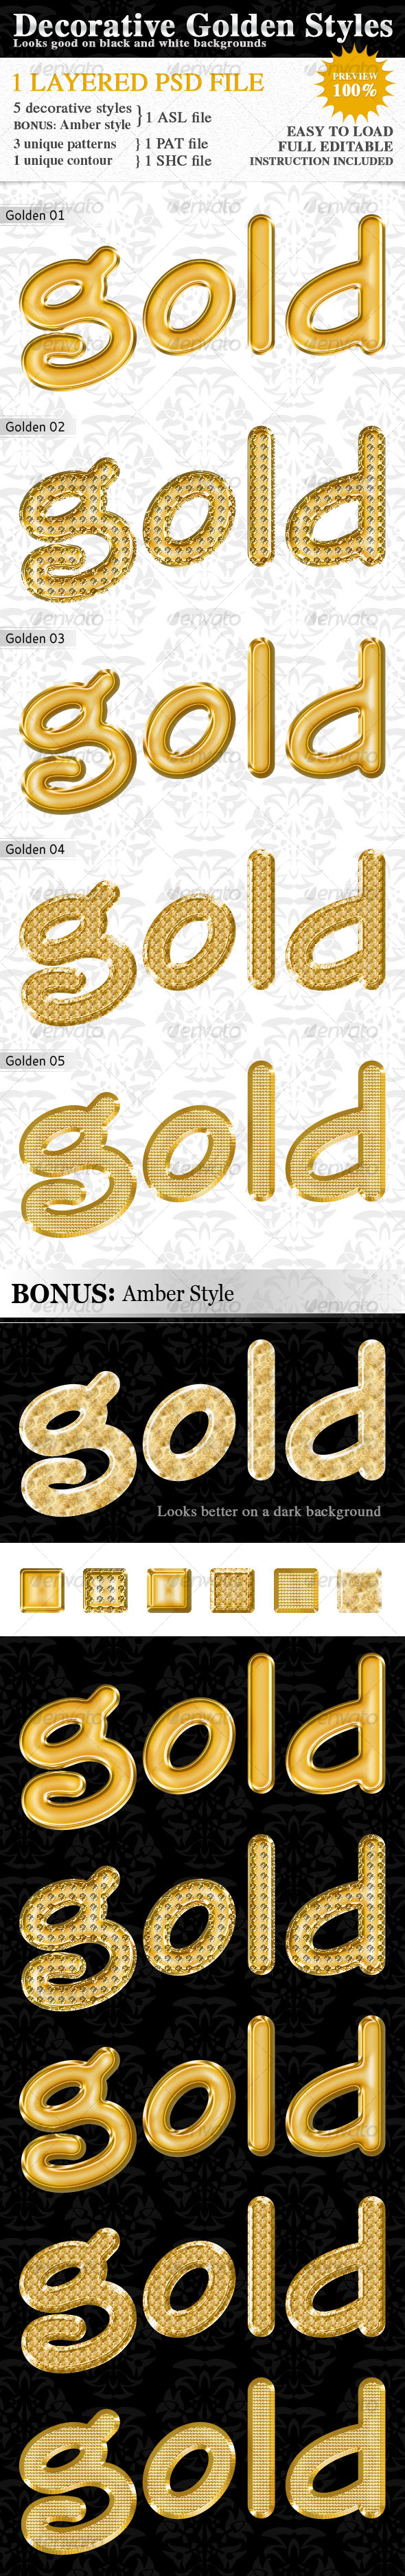 GraphicRiver Decorative Golden Styles 116266